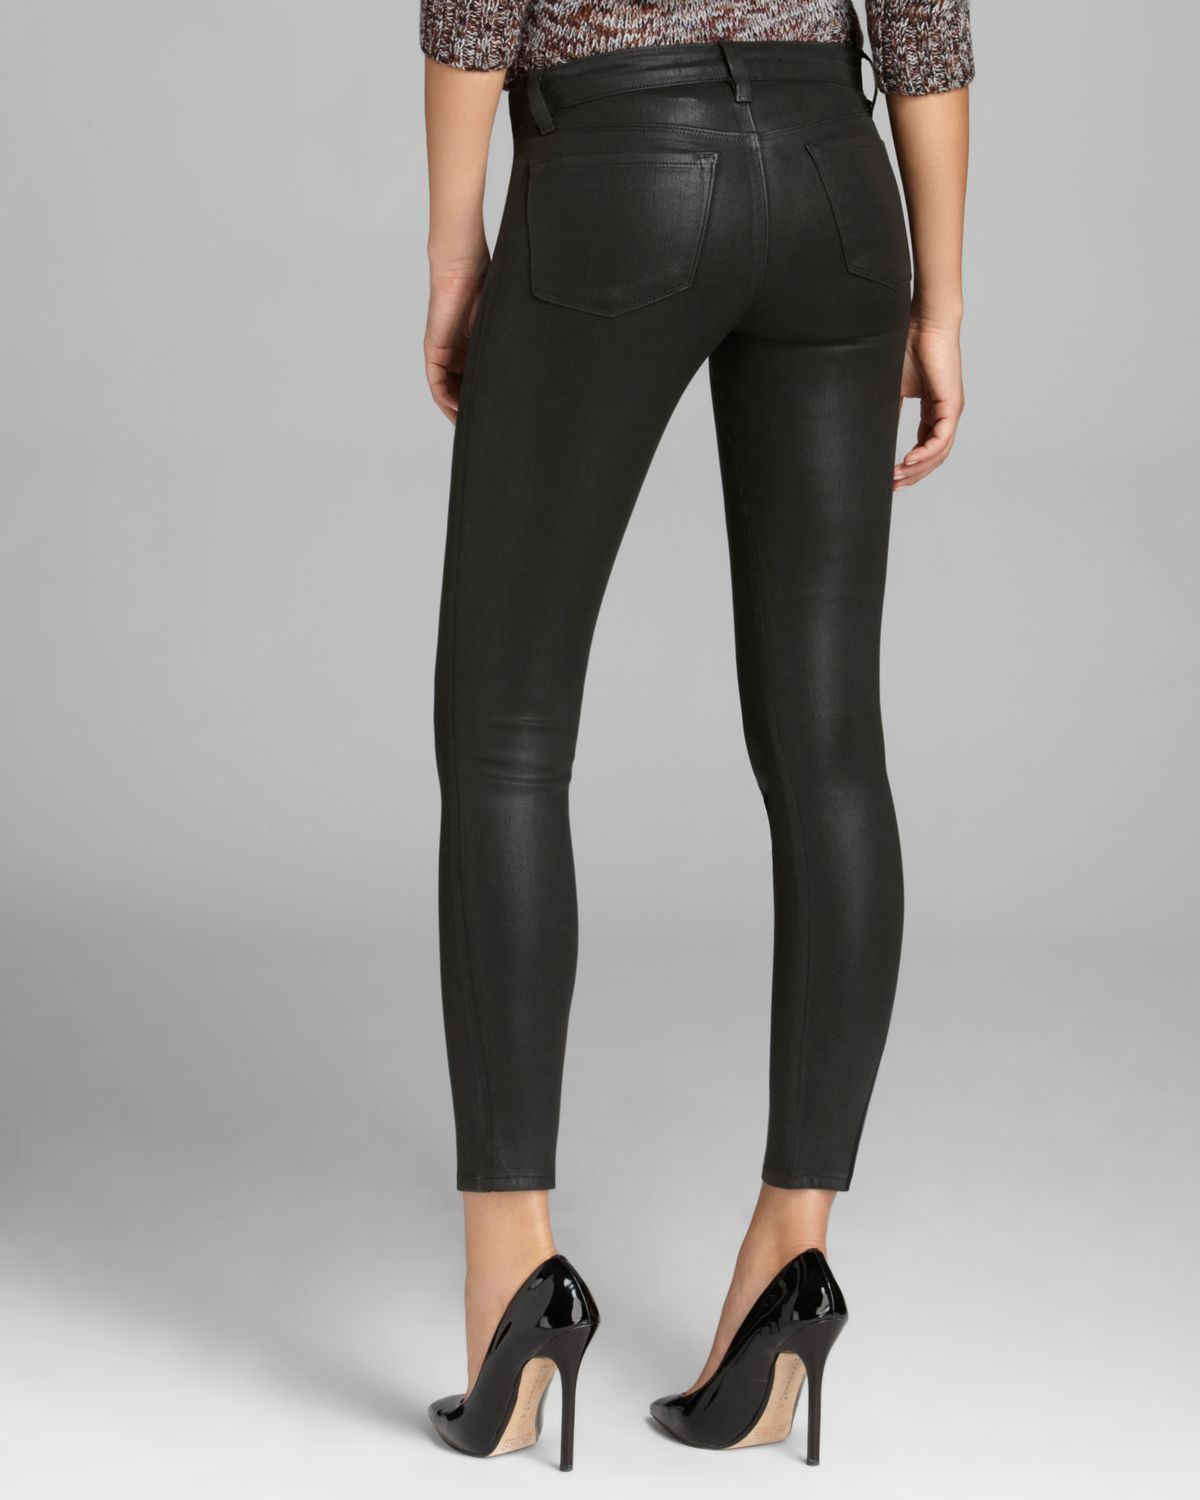 0a2d78f47639 Lyst - J Brand Jeans - 620 Mid Rise Super Skinny In Lacquered Black ...